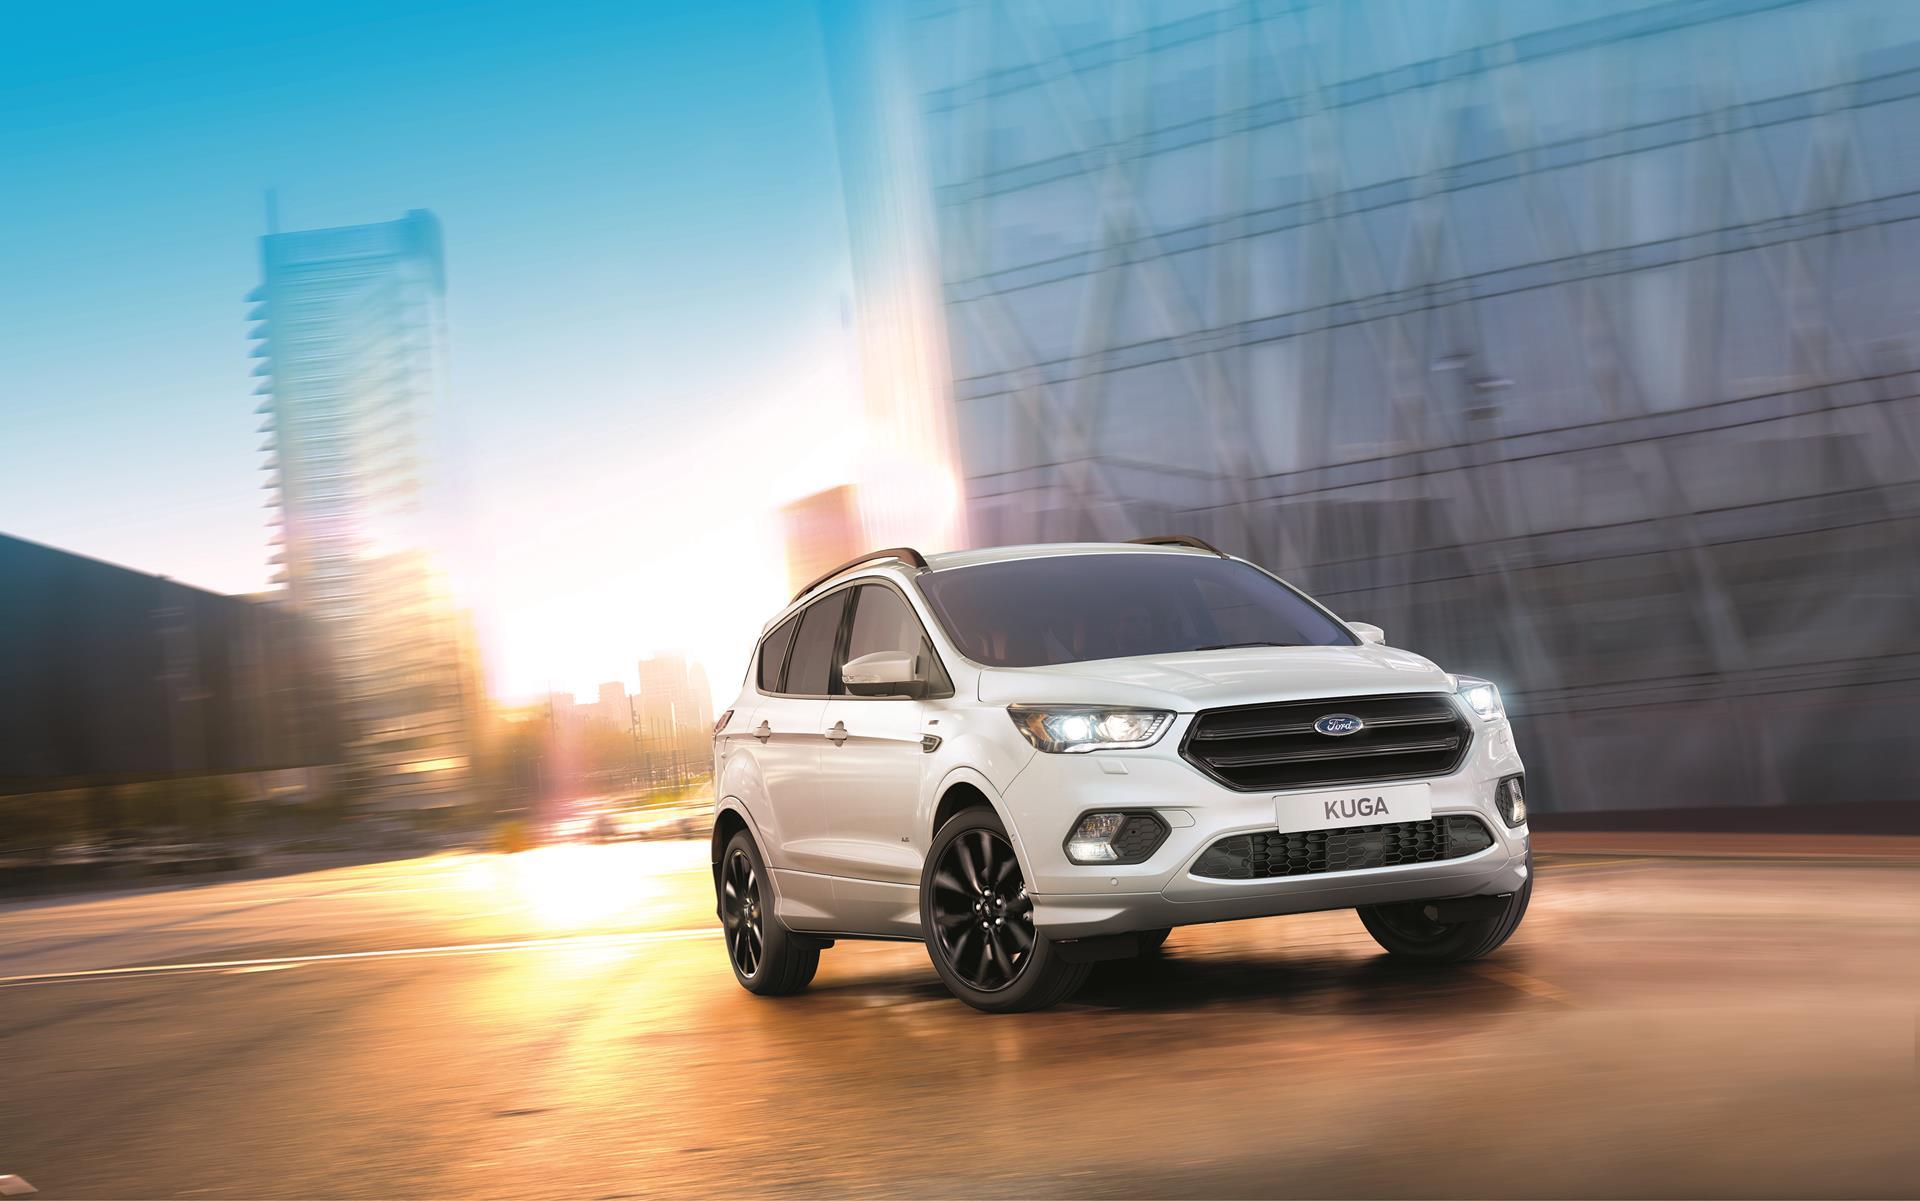 Ford Everest Uk Price >> 2016 Ford Kuga ST-Line Wallpaper and Image Gallery